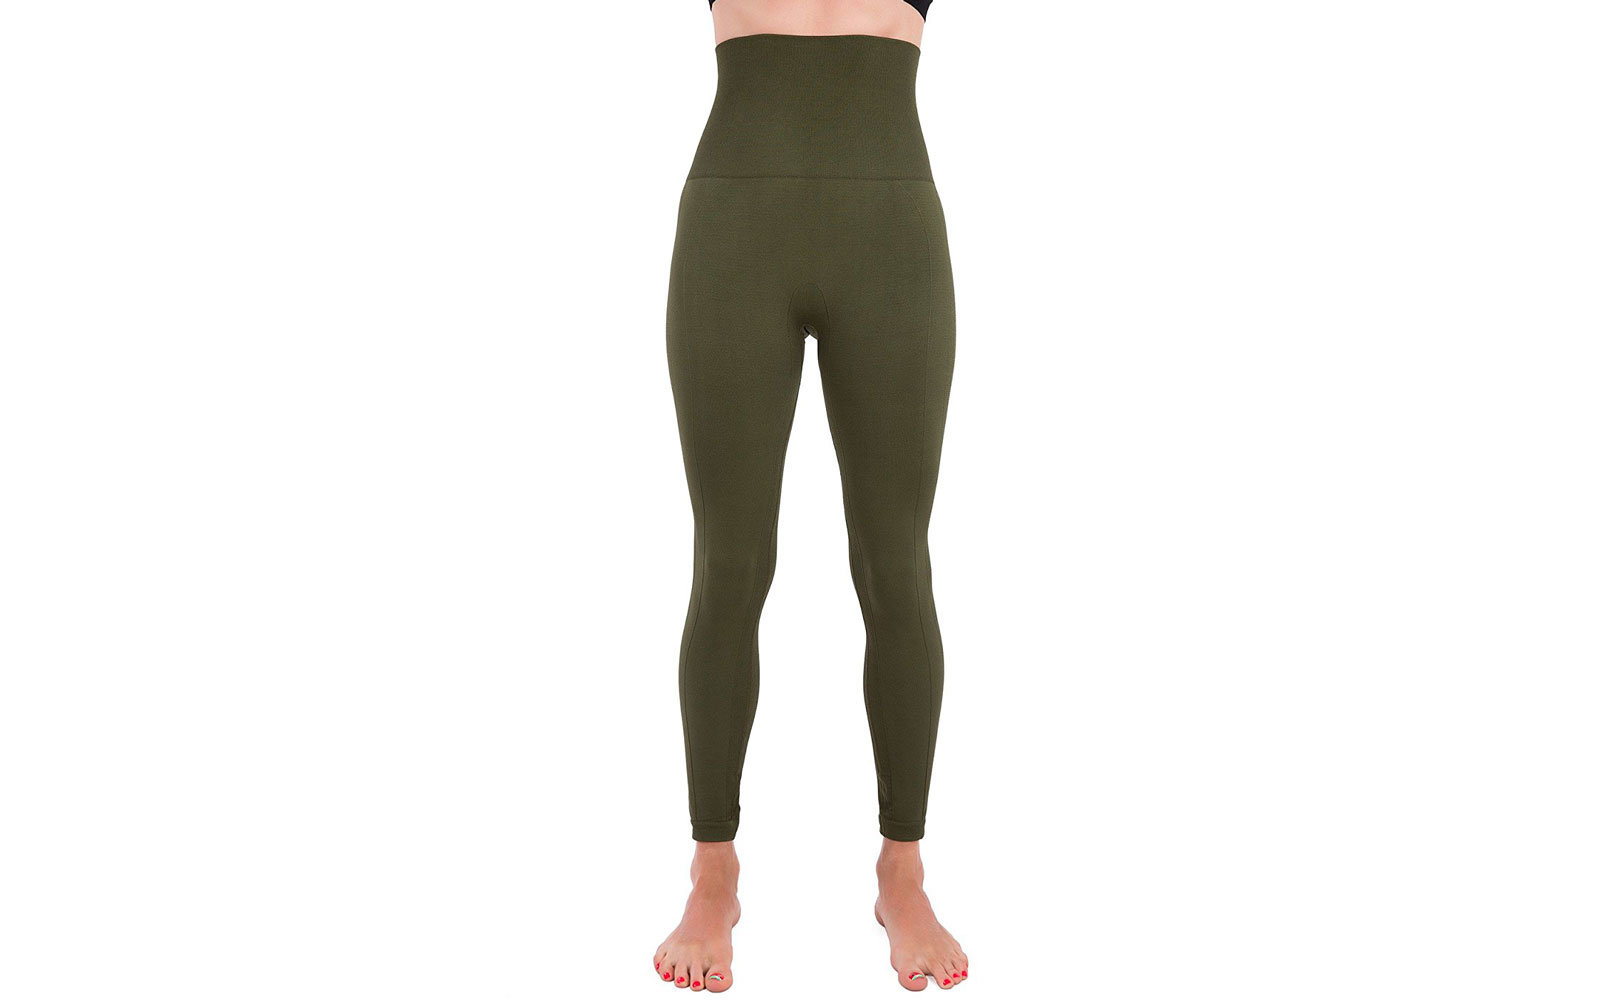 66d45b297 Homma High-waist Leggings. homma womens compression leggings